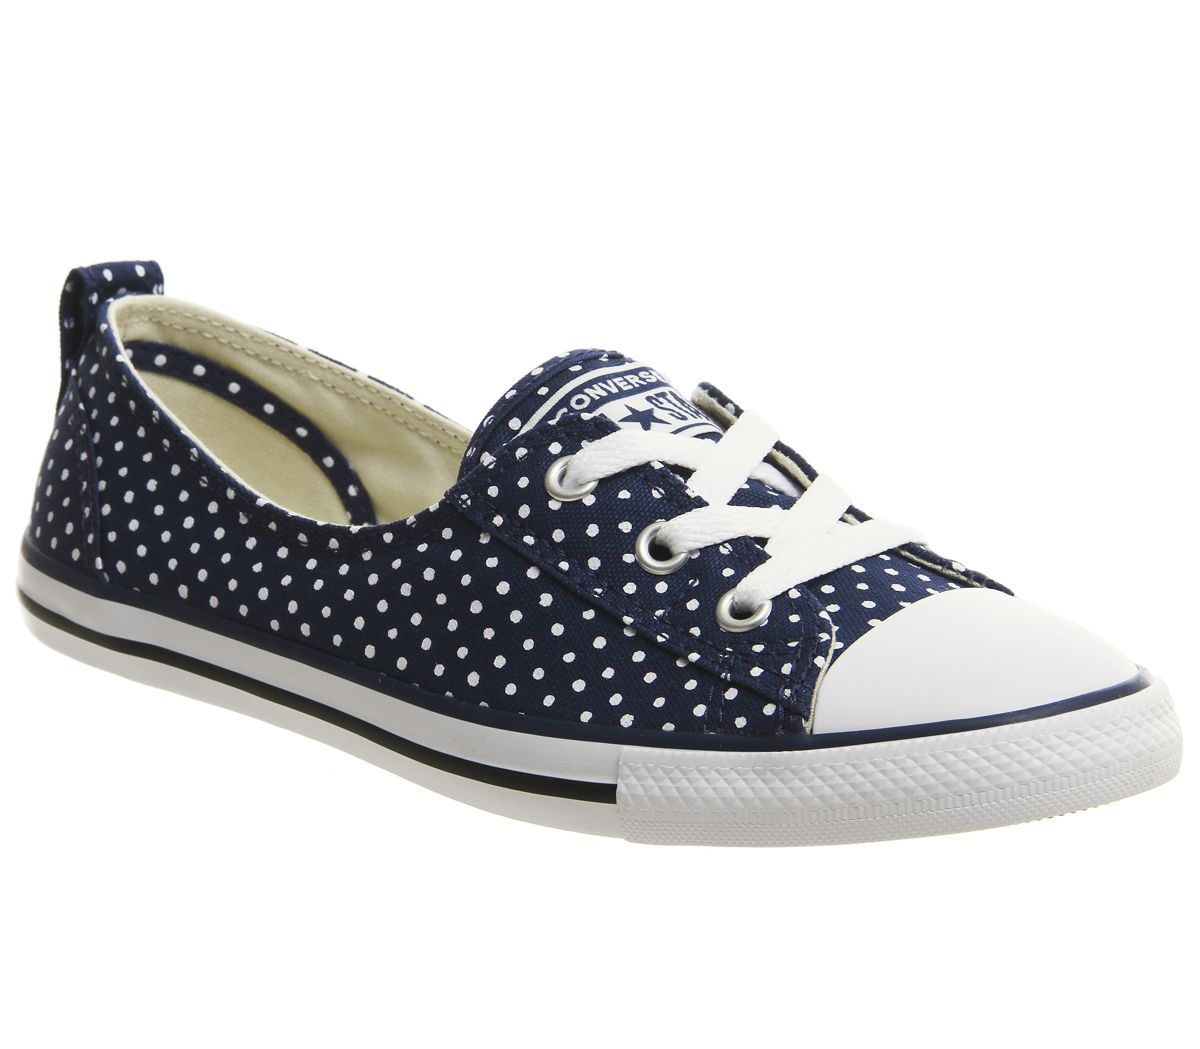 18ff6f4d4462 Converse Ctas Ballet Lace Navy White - Hers trainers